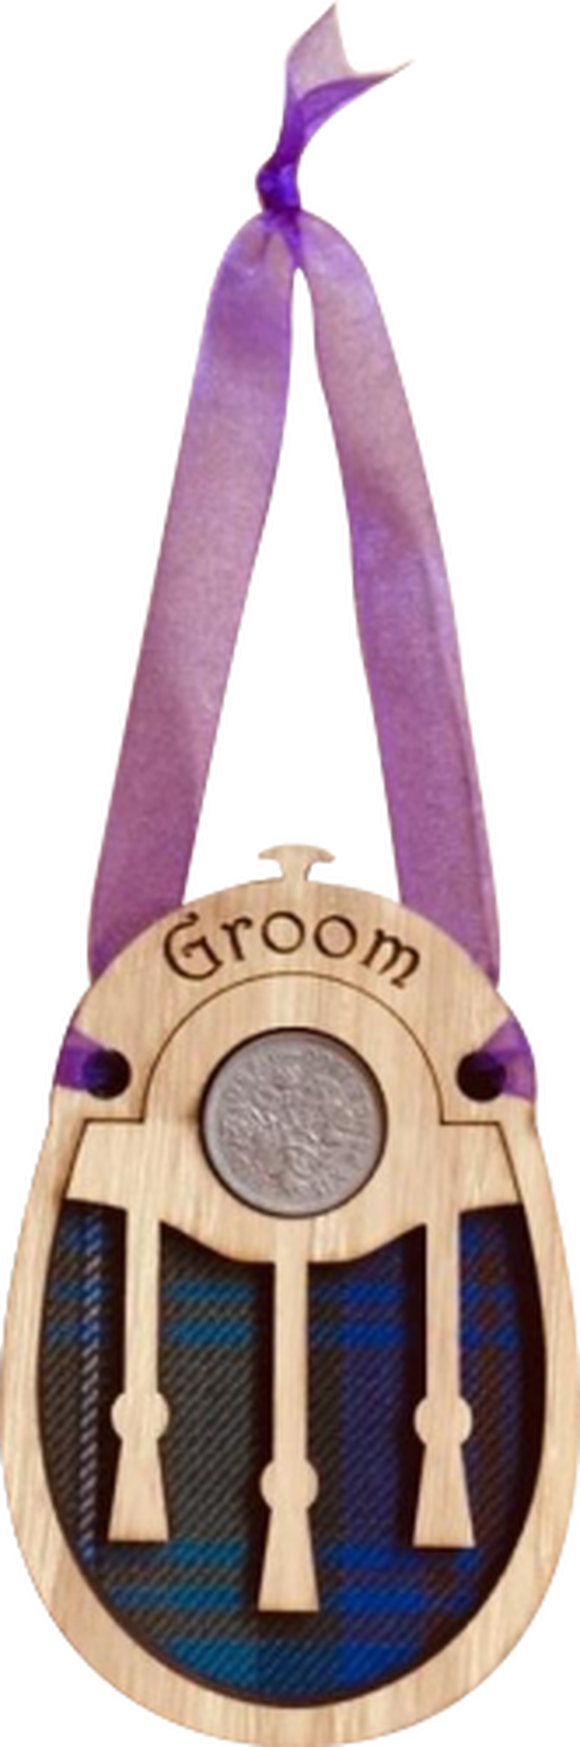 """Groom"" Sporran shaped Lucky Sixpence"